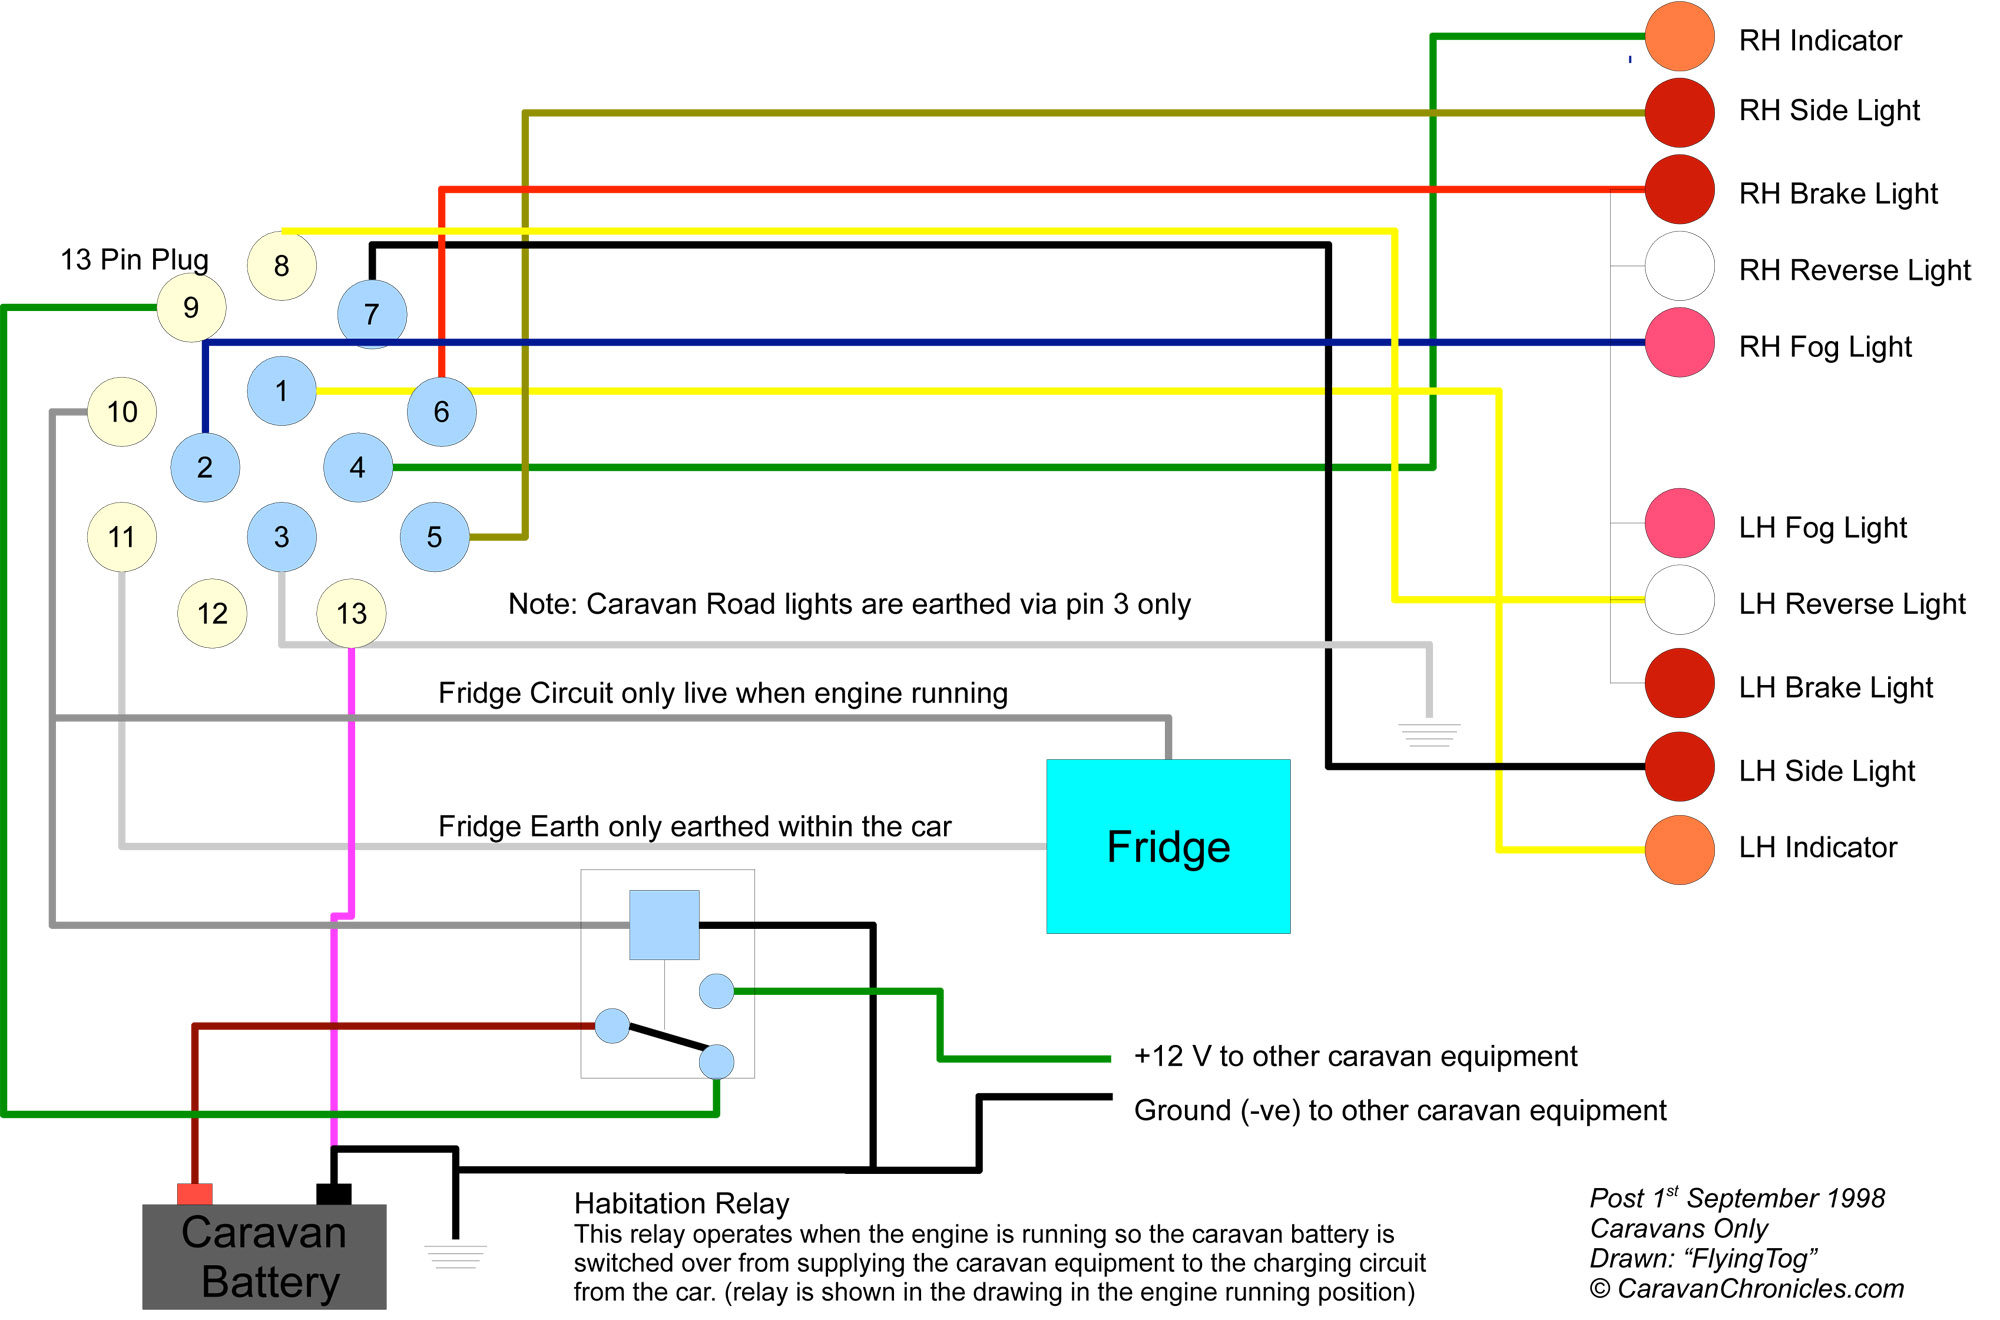 understanding caravan and tow car electrics caravan chronicles typical 13 pin connected caravan wiring showing habitation relay